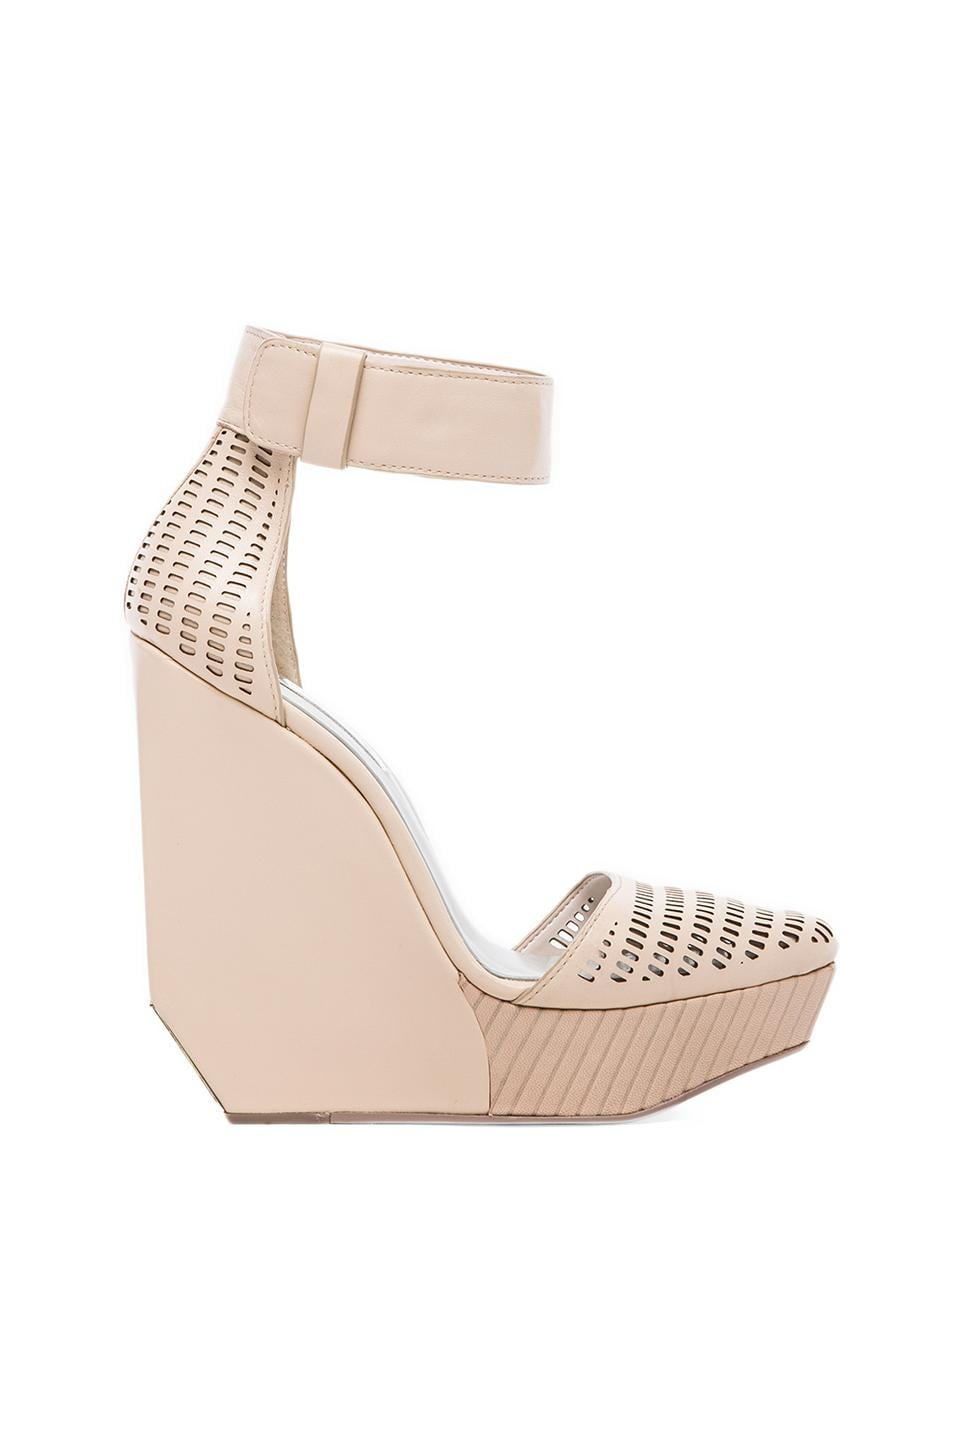 BCBGMAXAZRIA Austin Wedge in Parfait